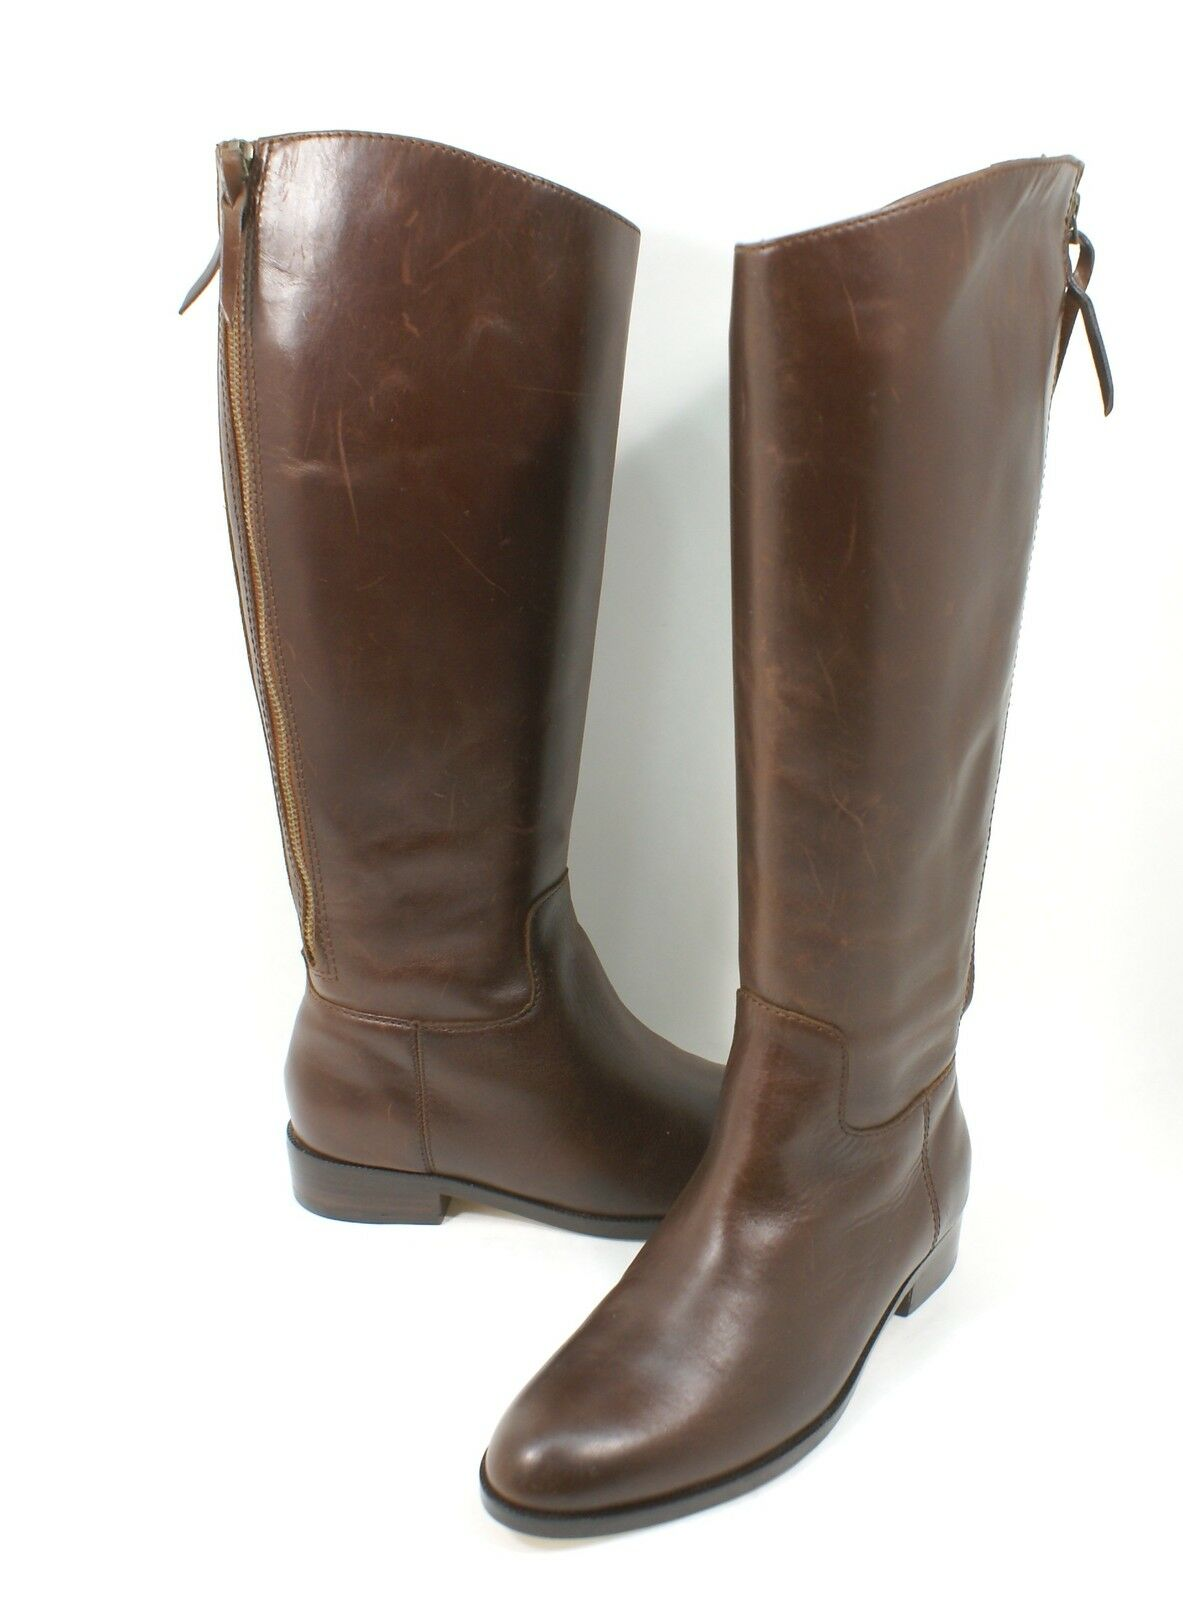 New Cole Haan Brown Arlington Leather Knee-High Riding Boots Size 6